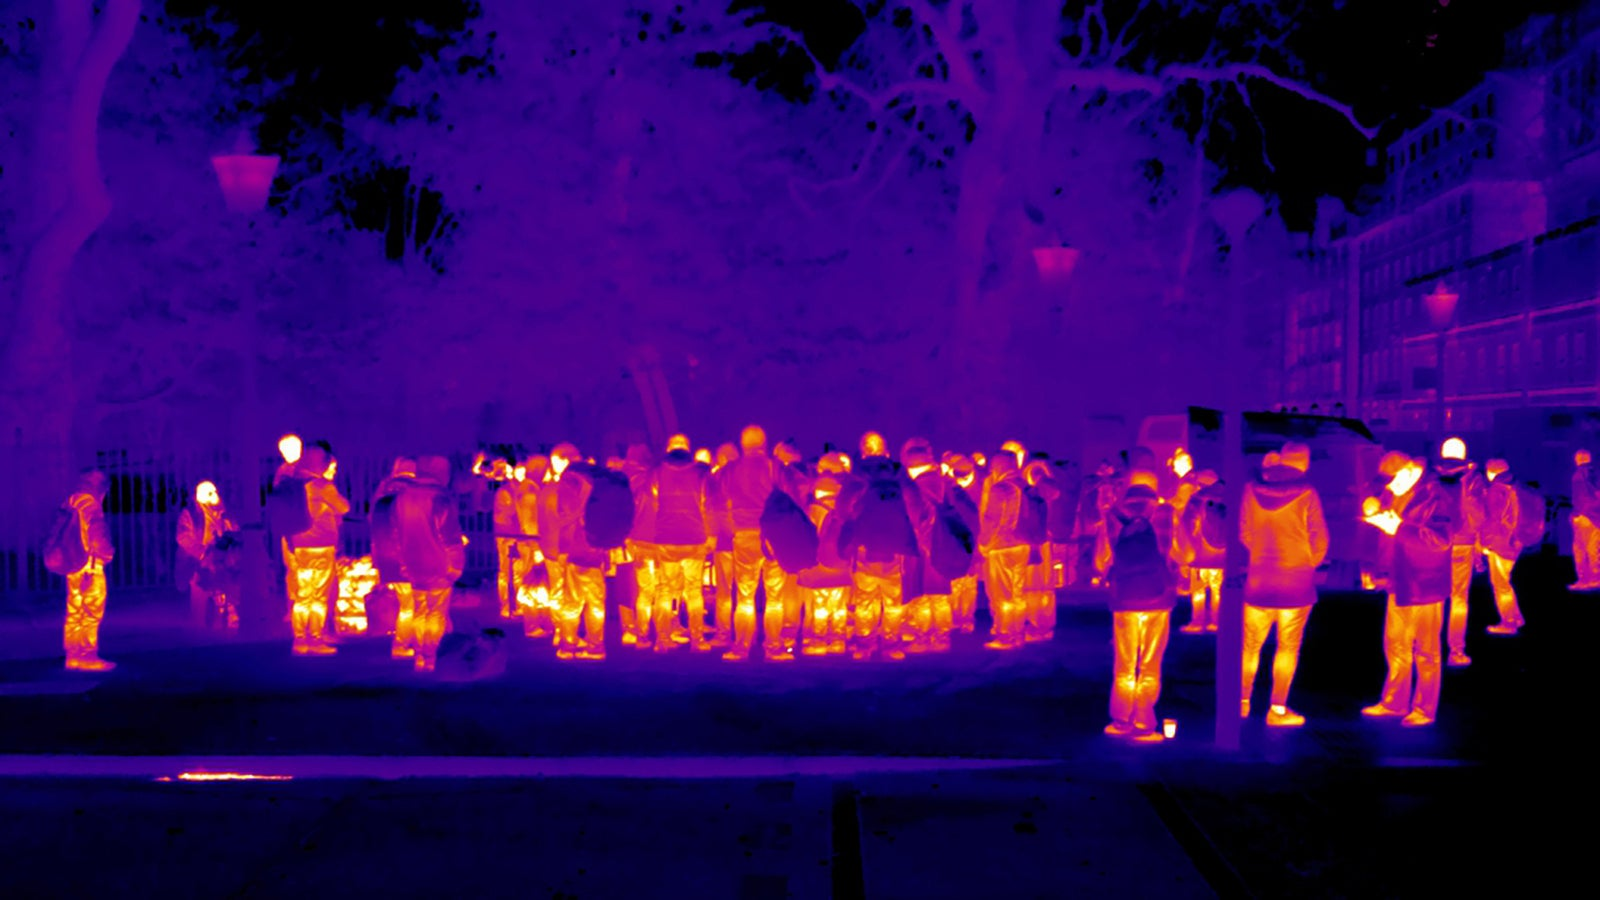 Thermal Photographs Show Europe's Homeless in the Dead of Winter